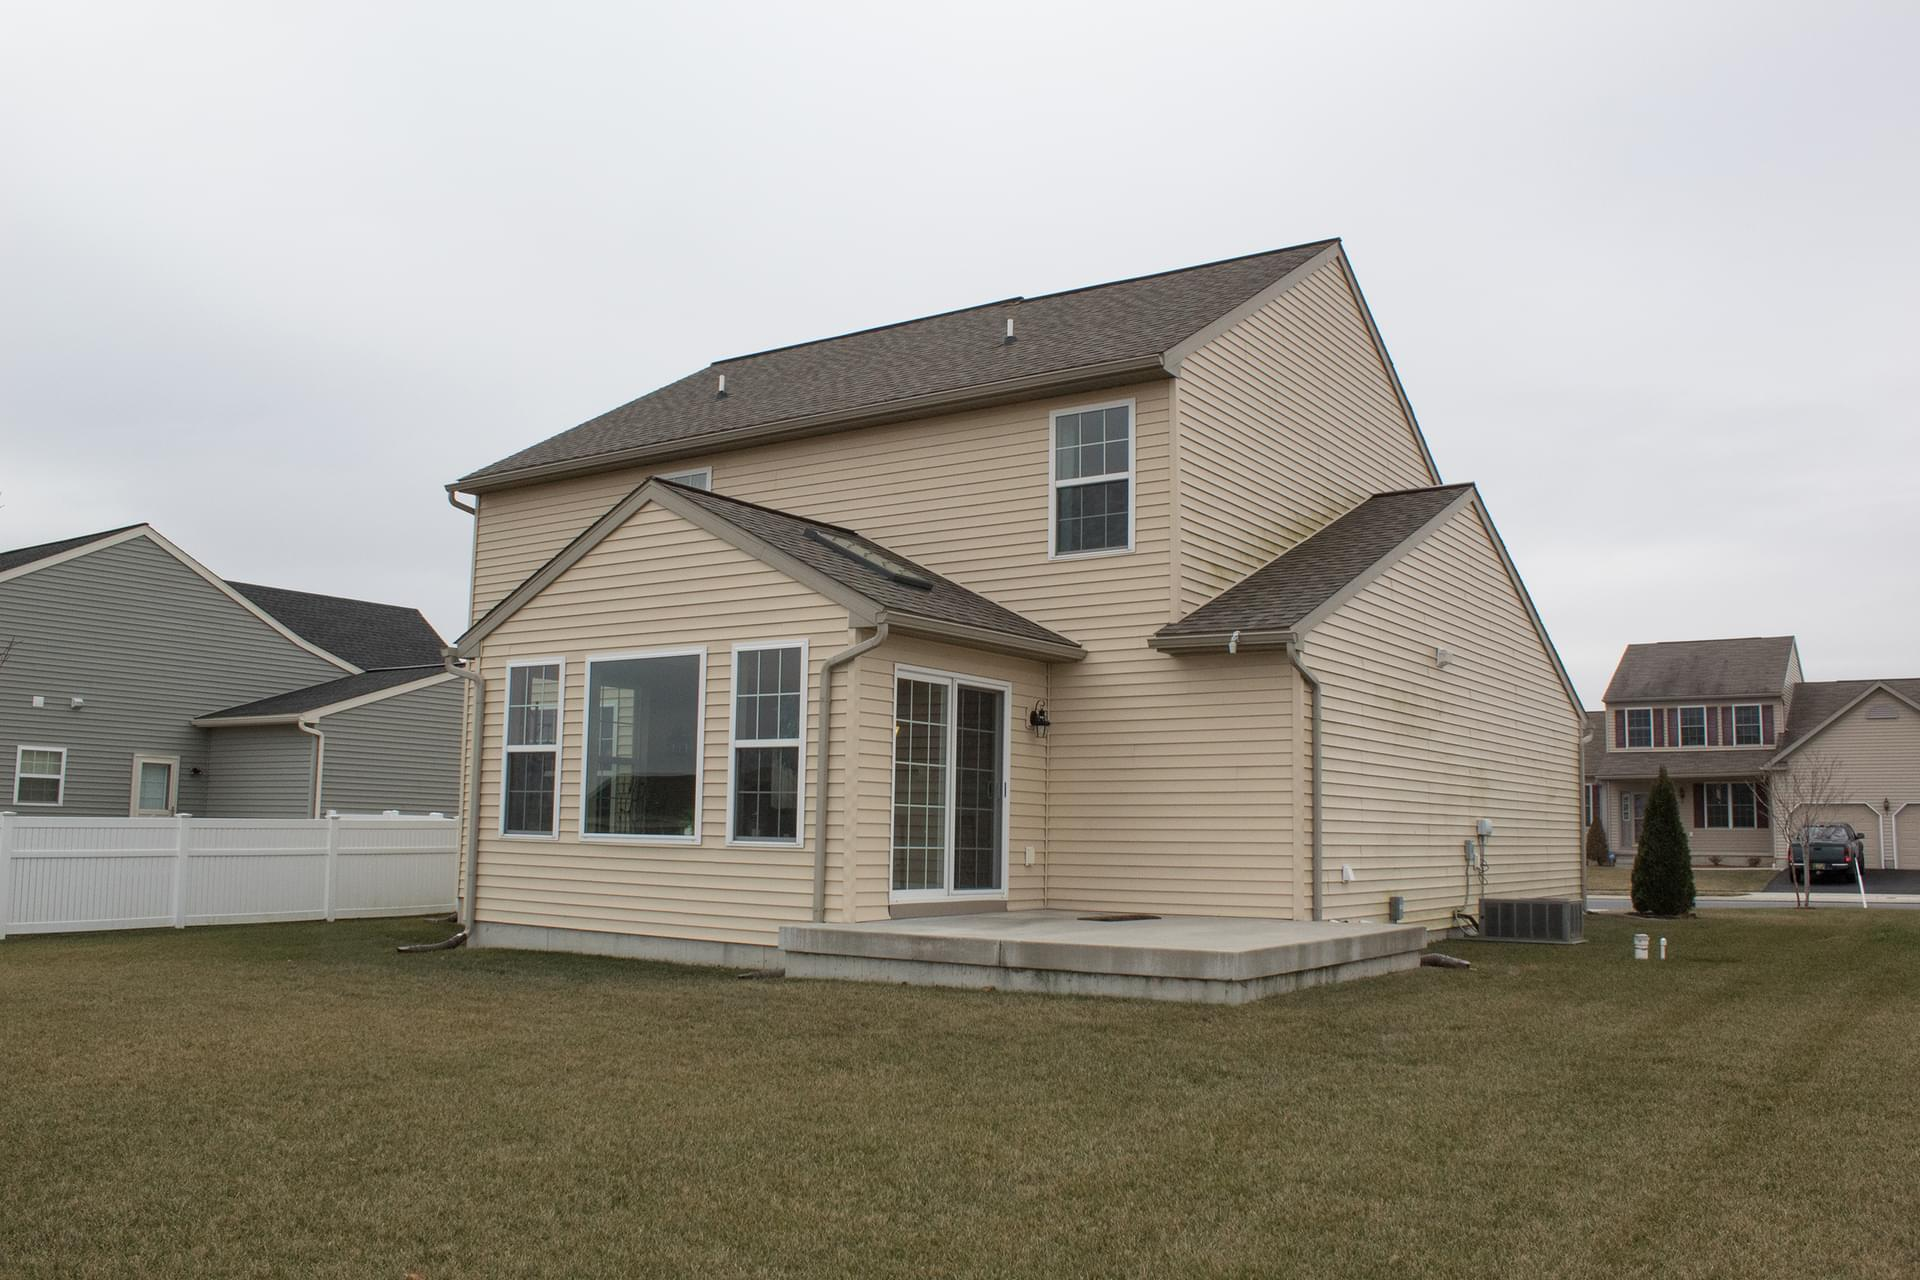 3br New Home in Mohnton, PA